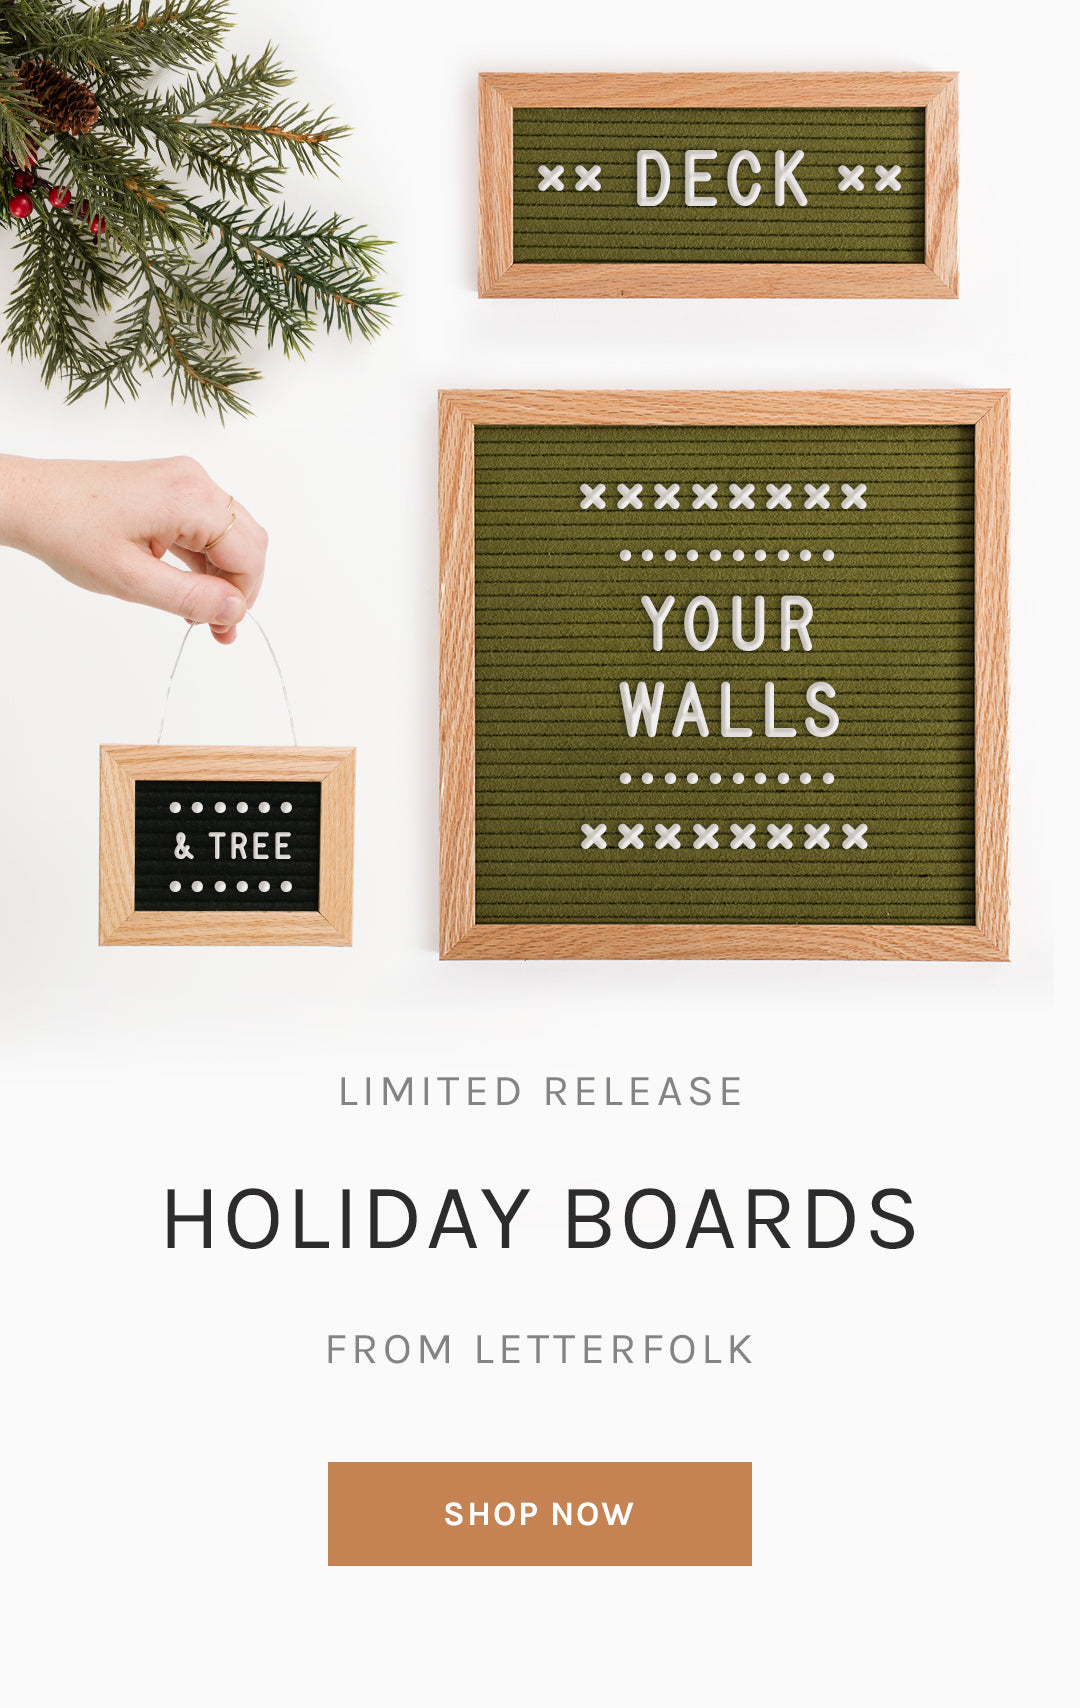 Limited Release Holiday Boards from Letterfolk